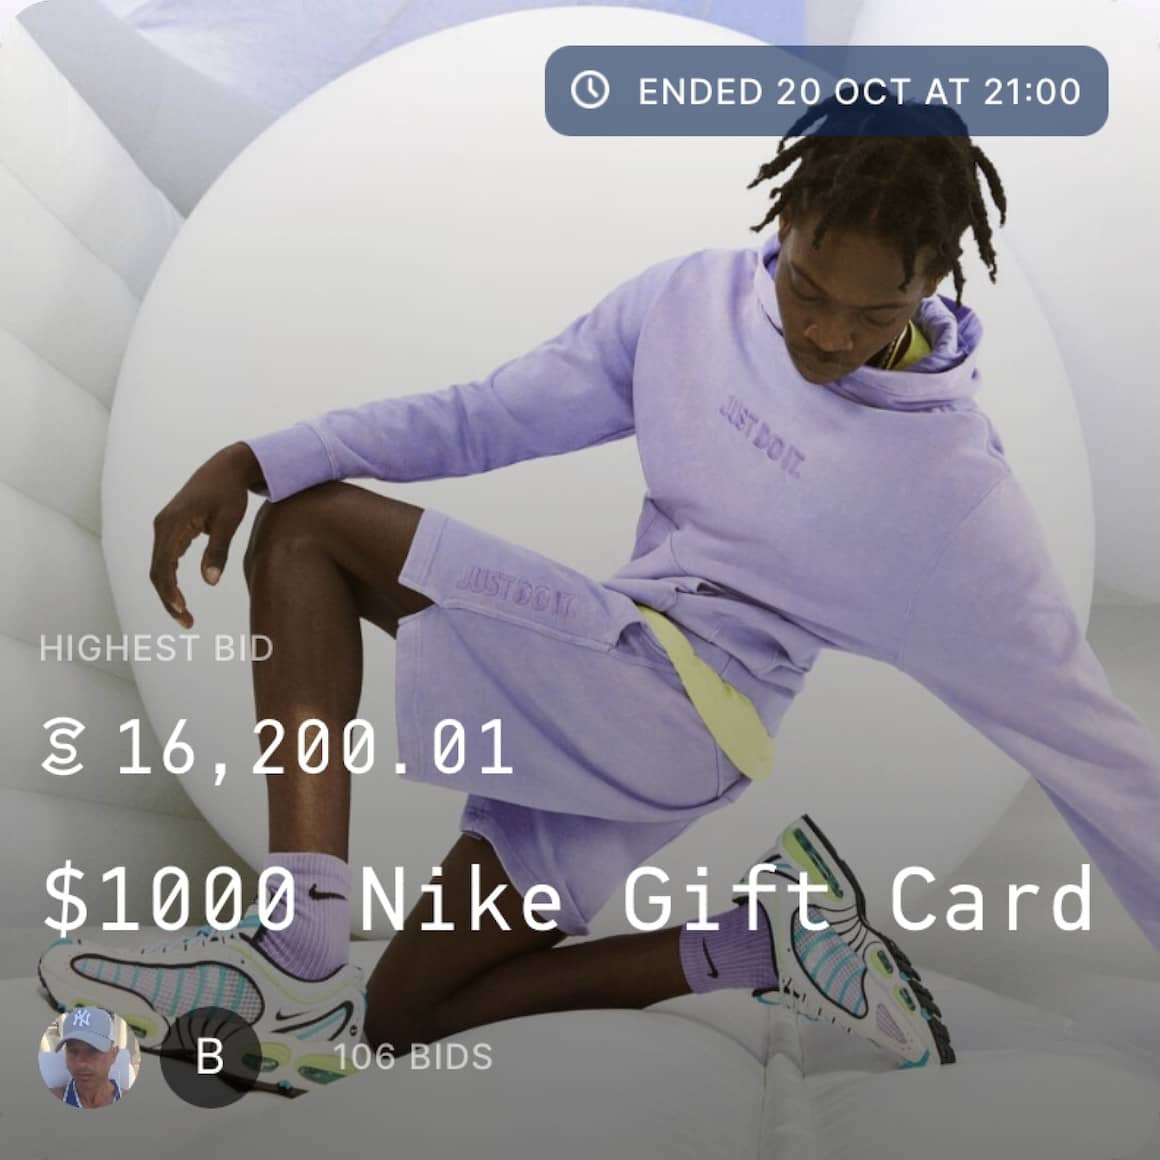 Sweatcoin auctions